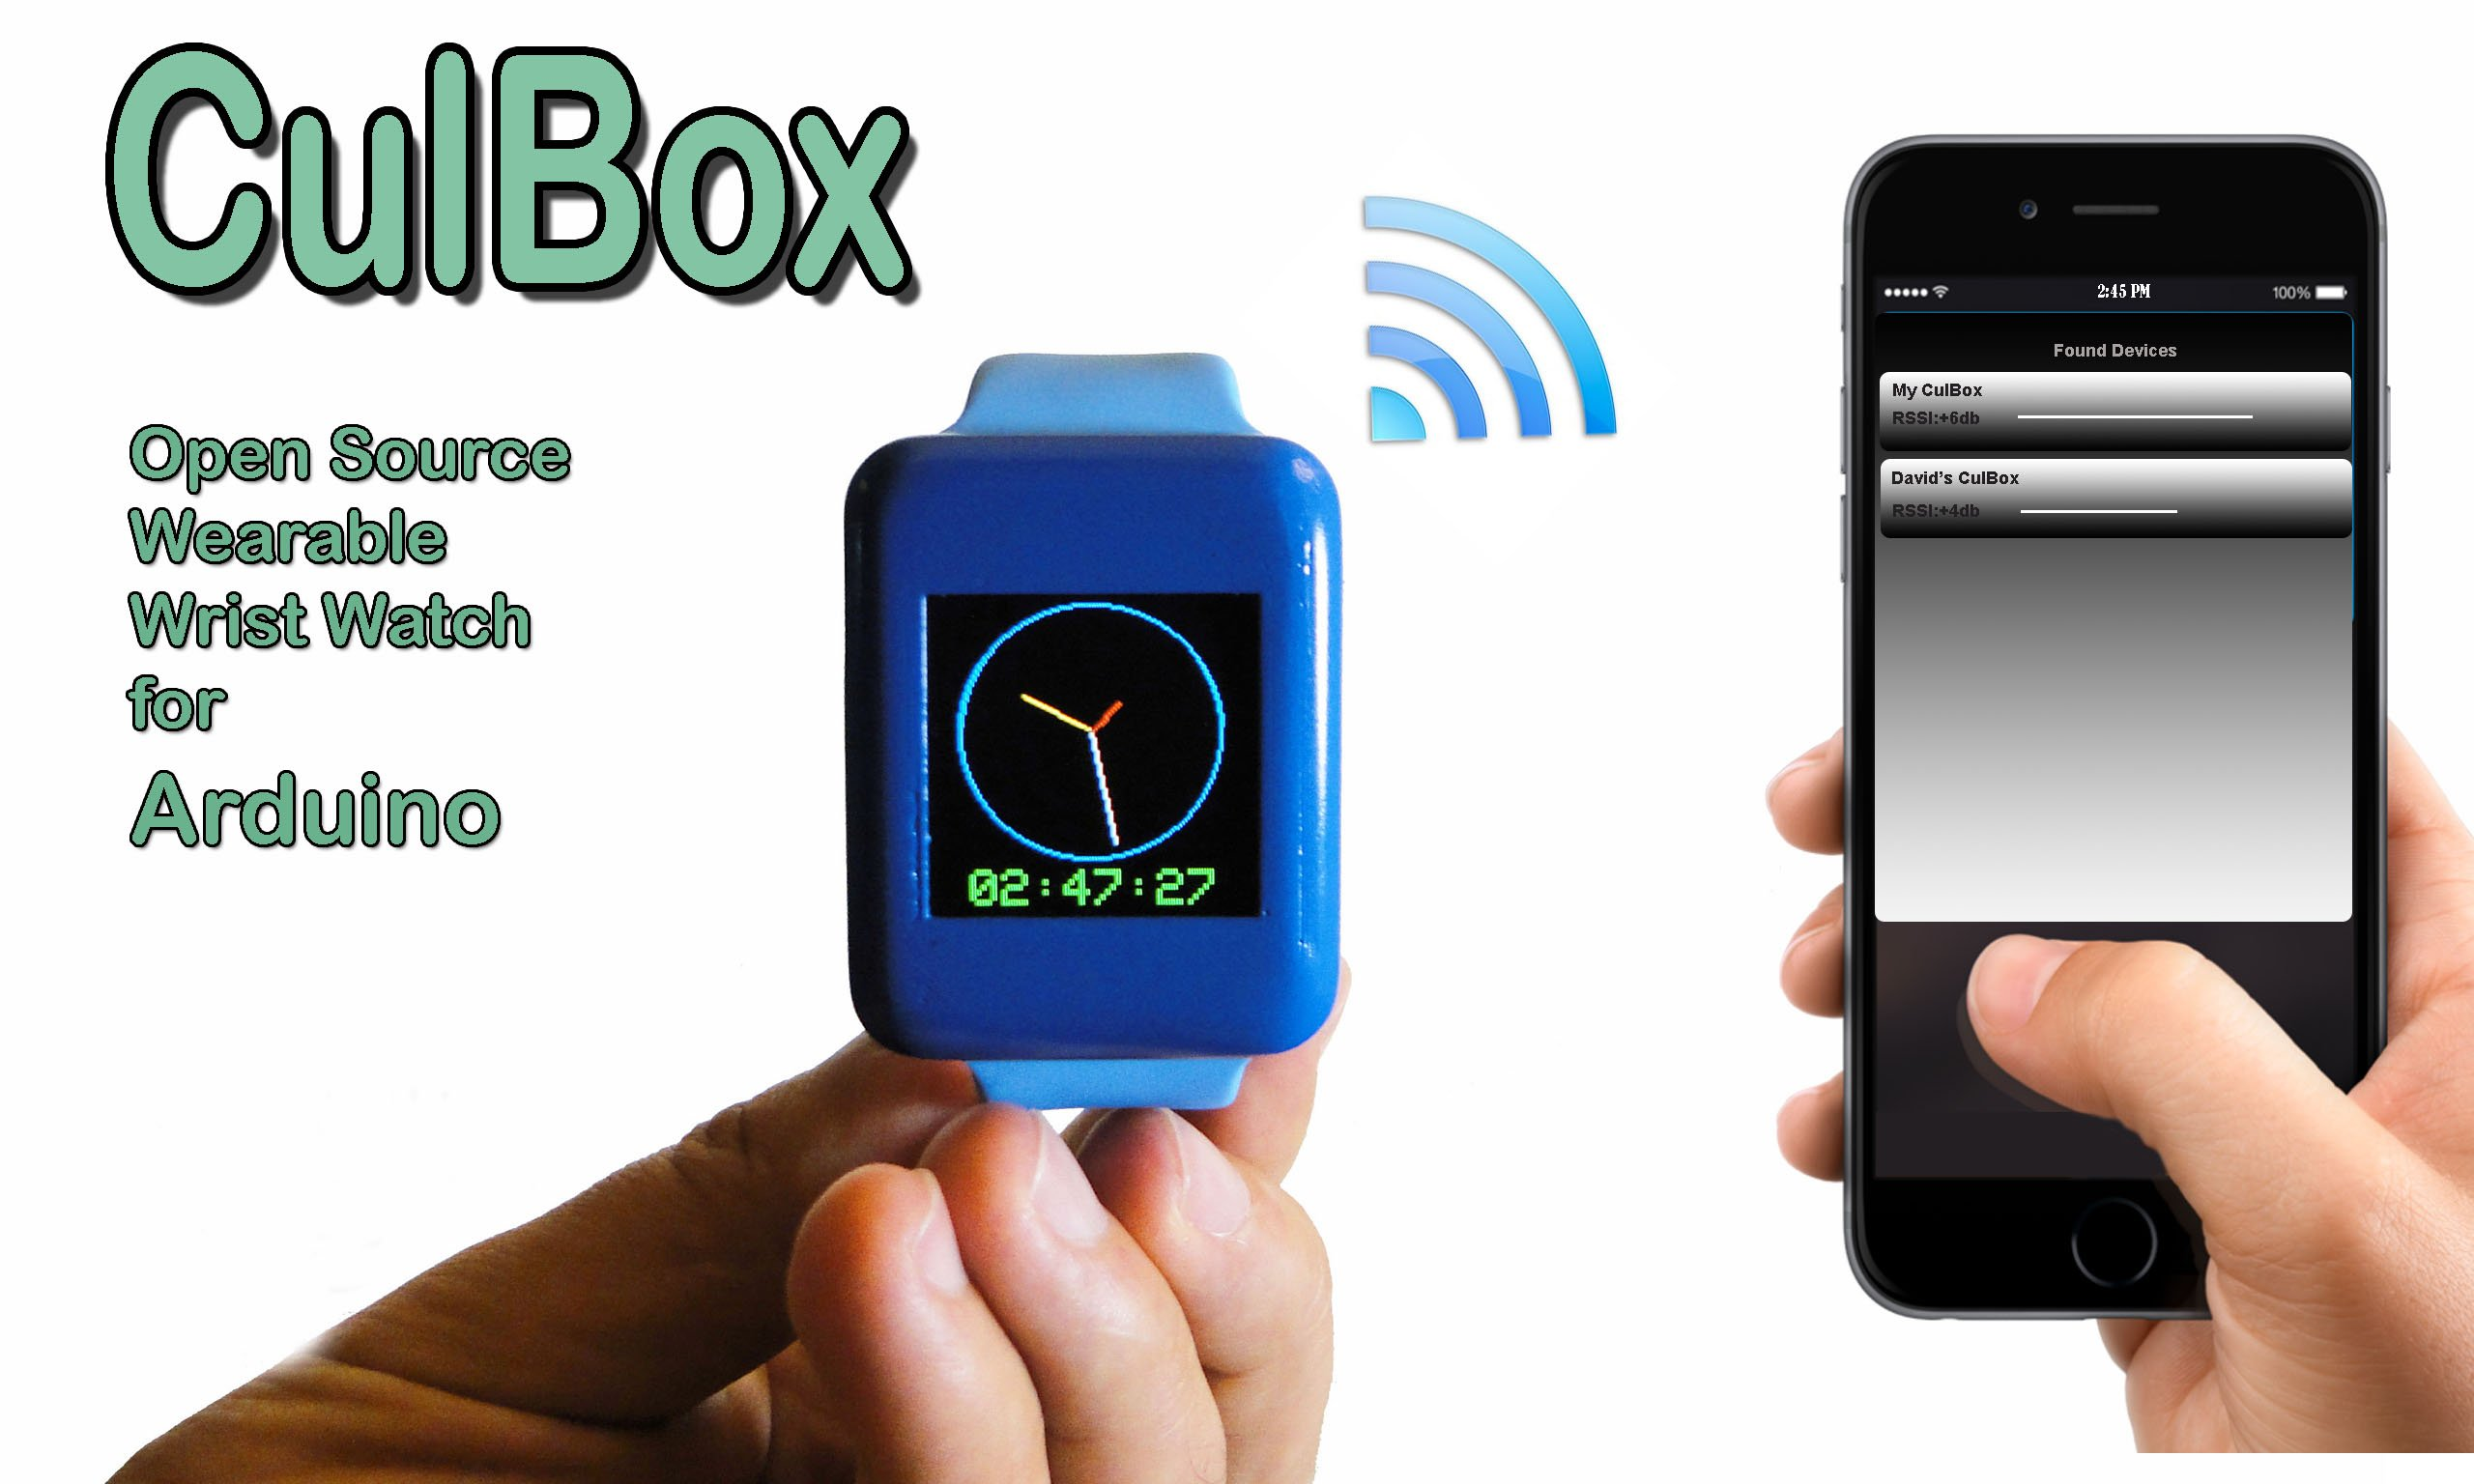 Culbox open source smart watch for arduino from